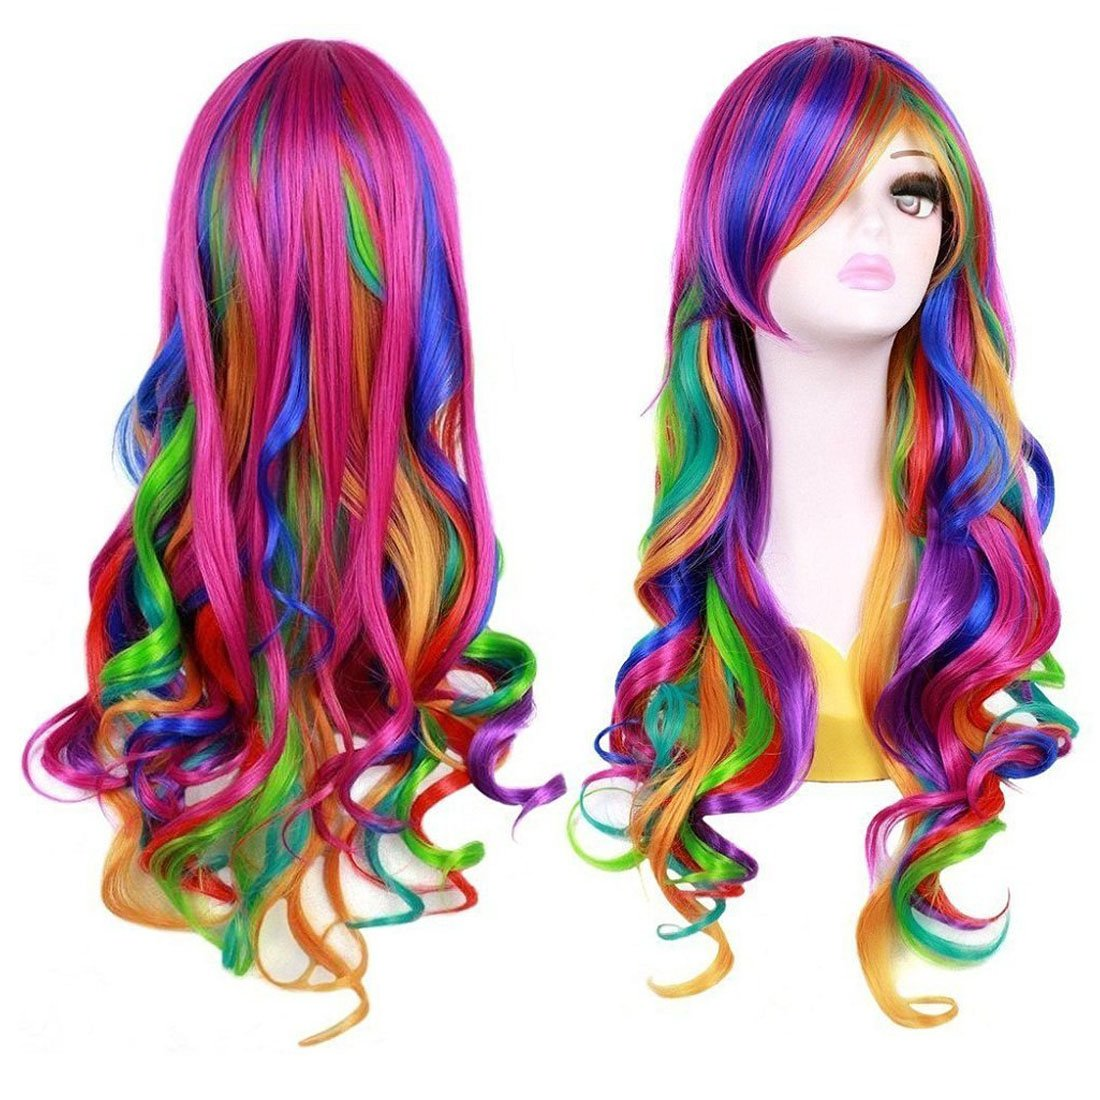 BERON 27 5 Women Girls Long Curly Wavy Rainbow Wig for Halloween Anime Cosplay Multi-color